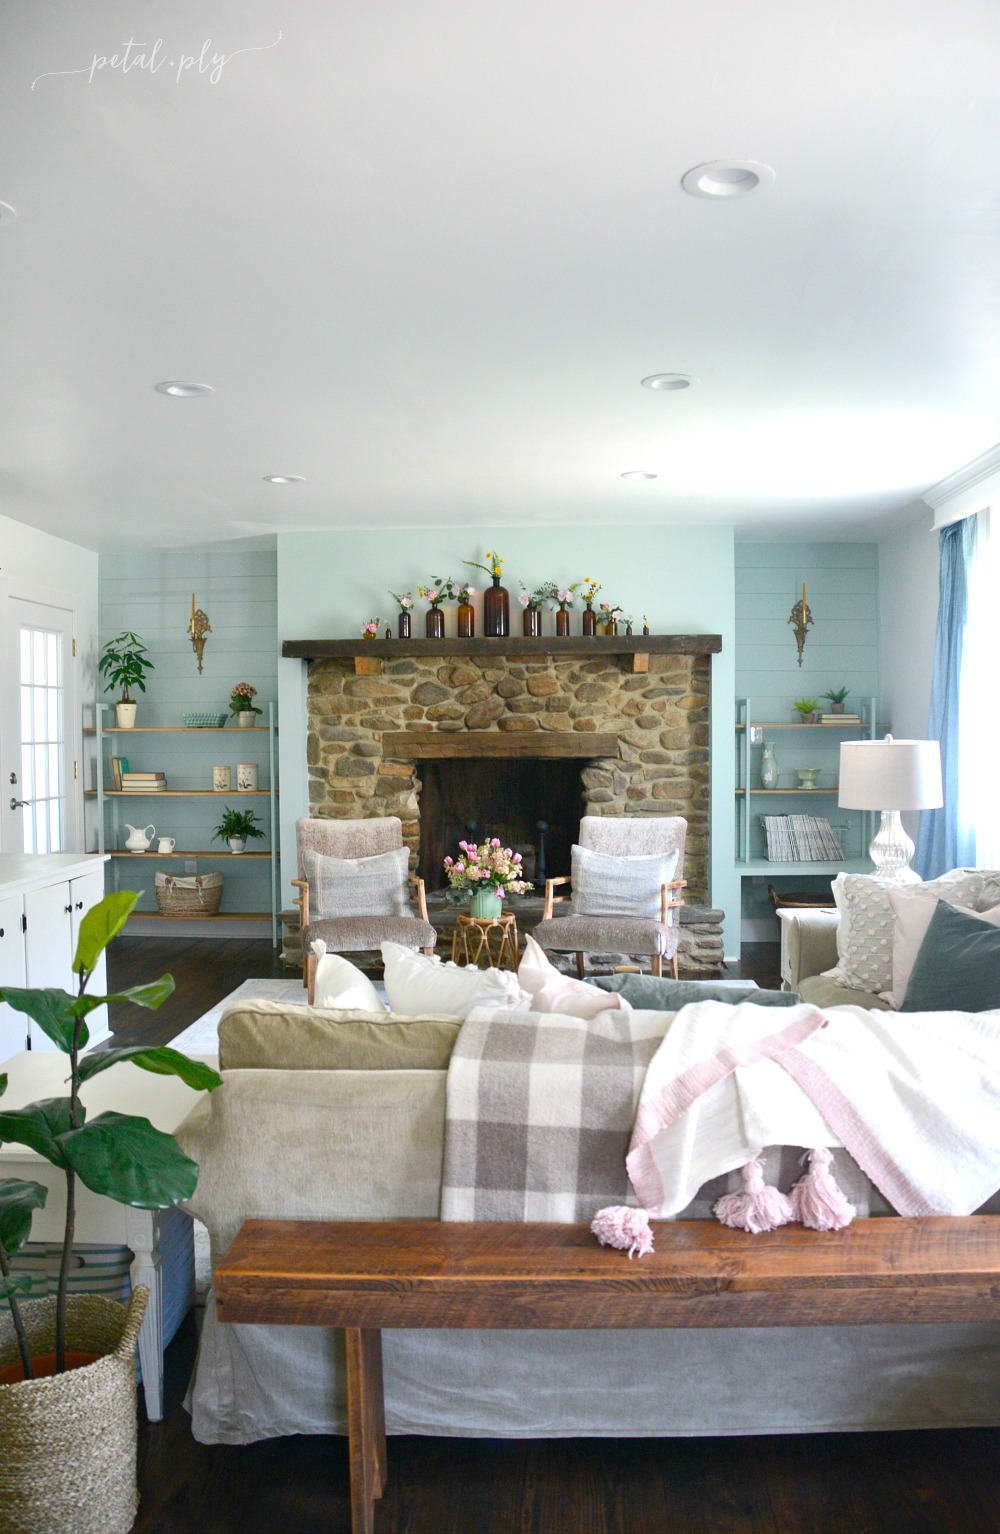 Eclectic Botanical Farmhouse Family Room Reveal One Room